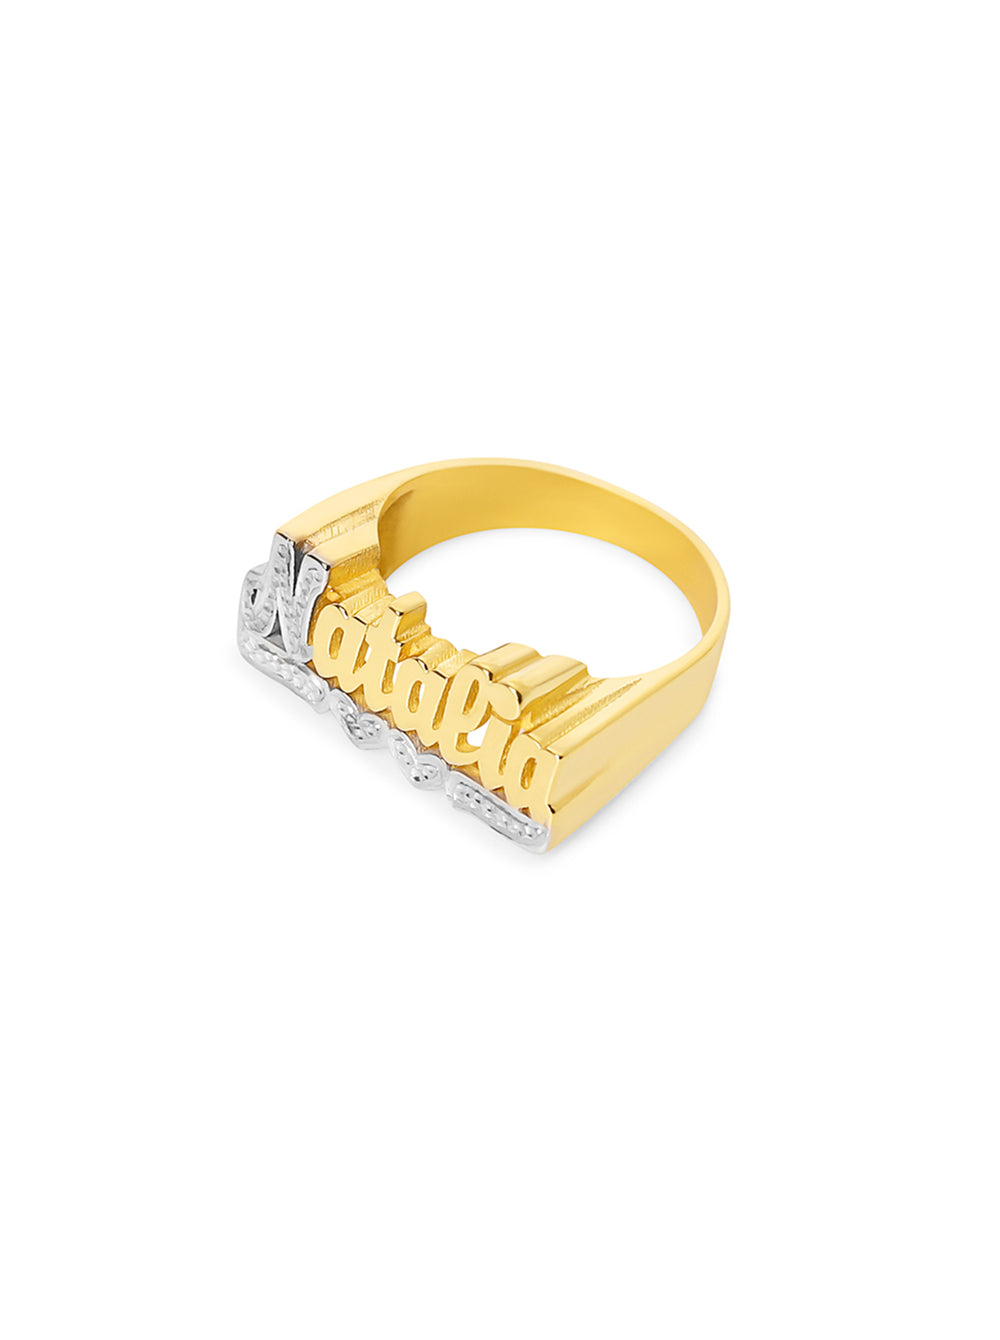 THE CLASSIC DOUBLE HEART CUT NAME RING